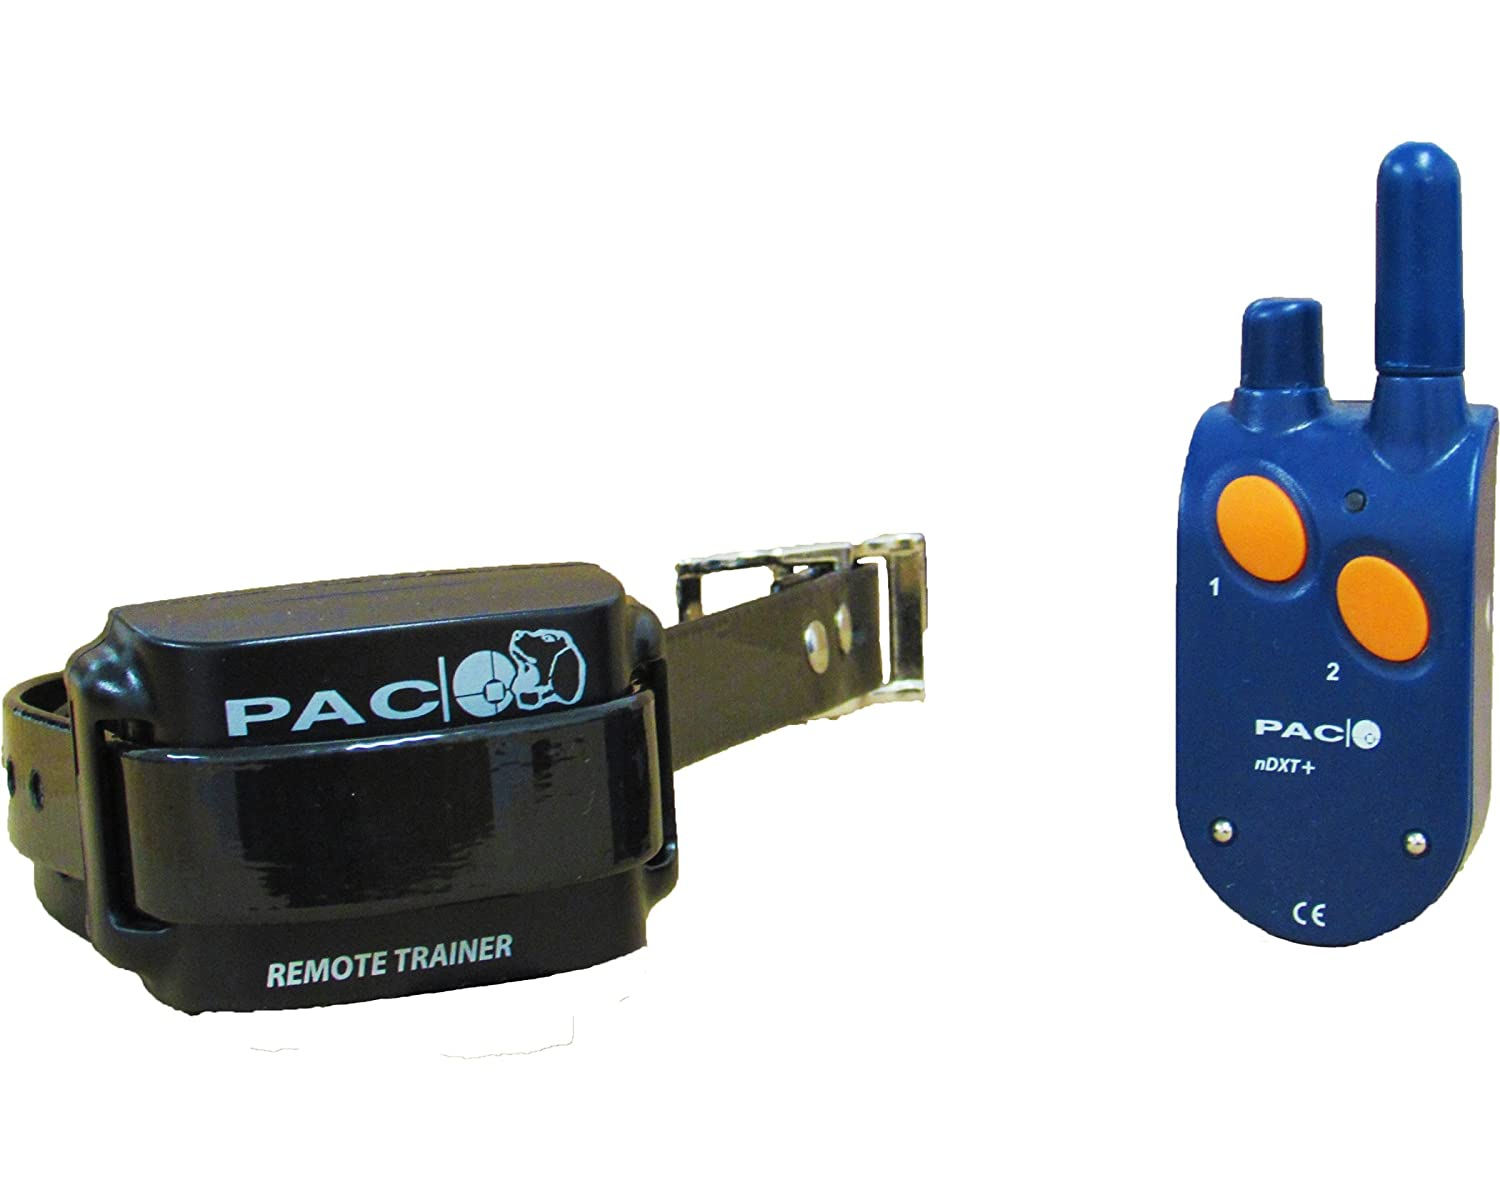 Pacdog's PacBuzz No Shock Dog Training Collar with Remote   Irish Made with 2 Year Warranty Rechargeable Waterproof 1km Range Pet Trainer for Large Small Medium Dogs